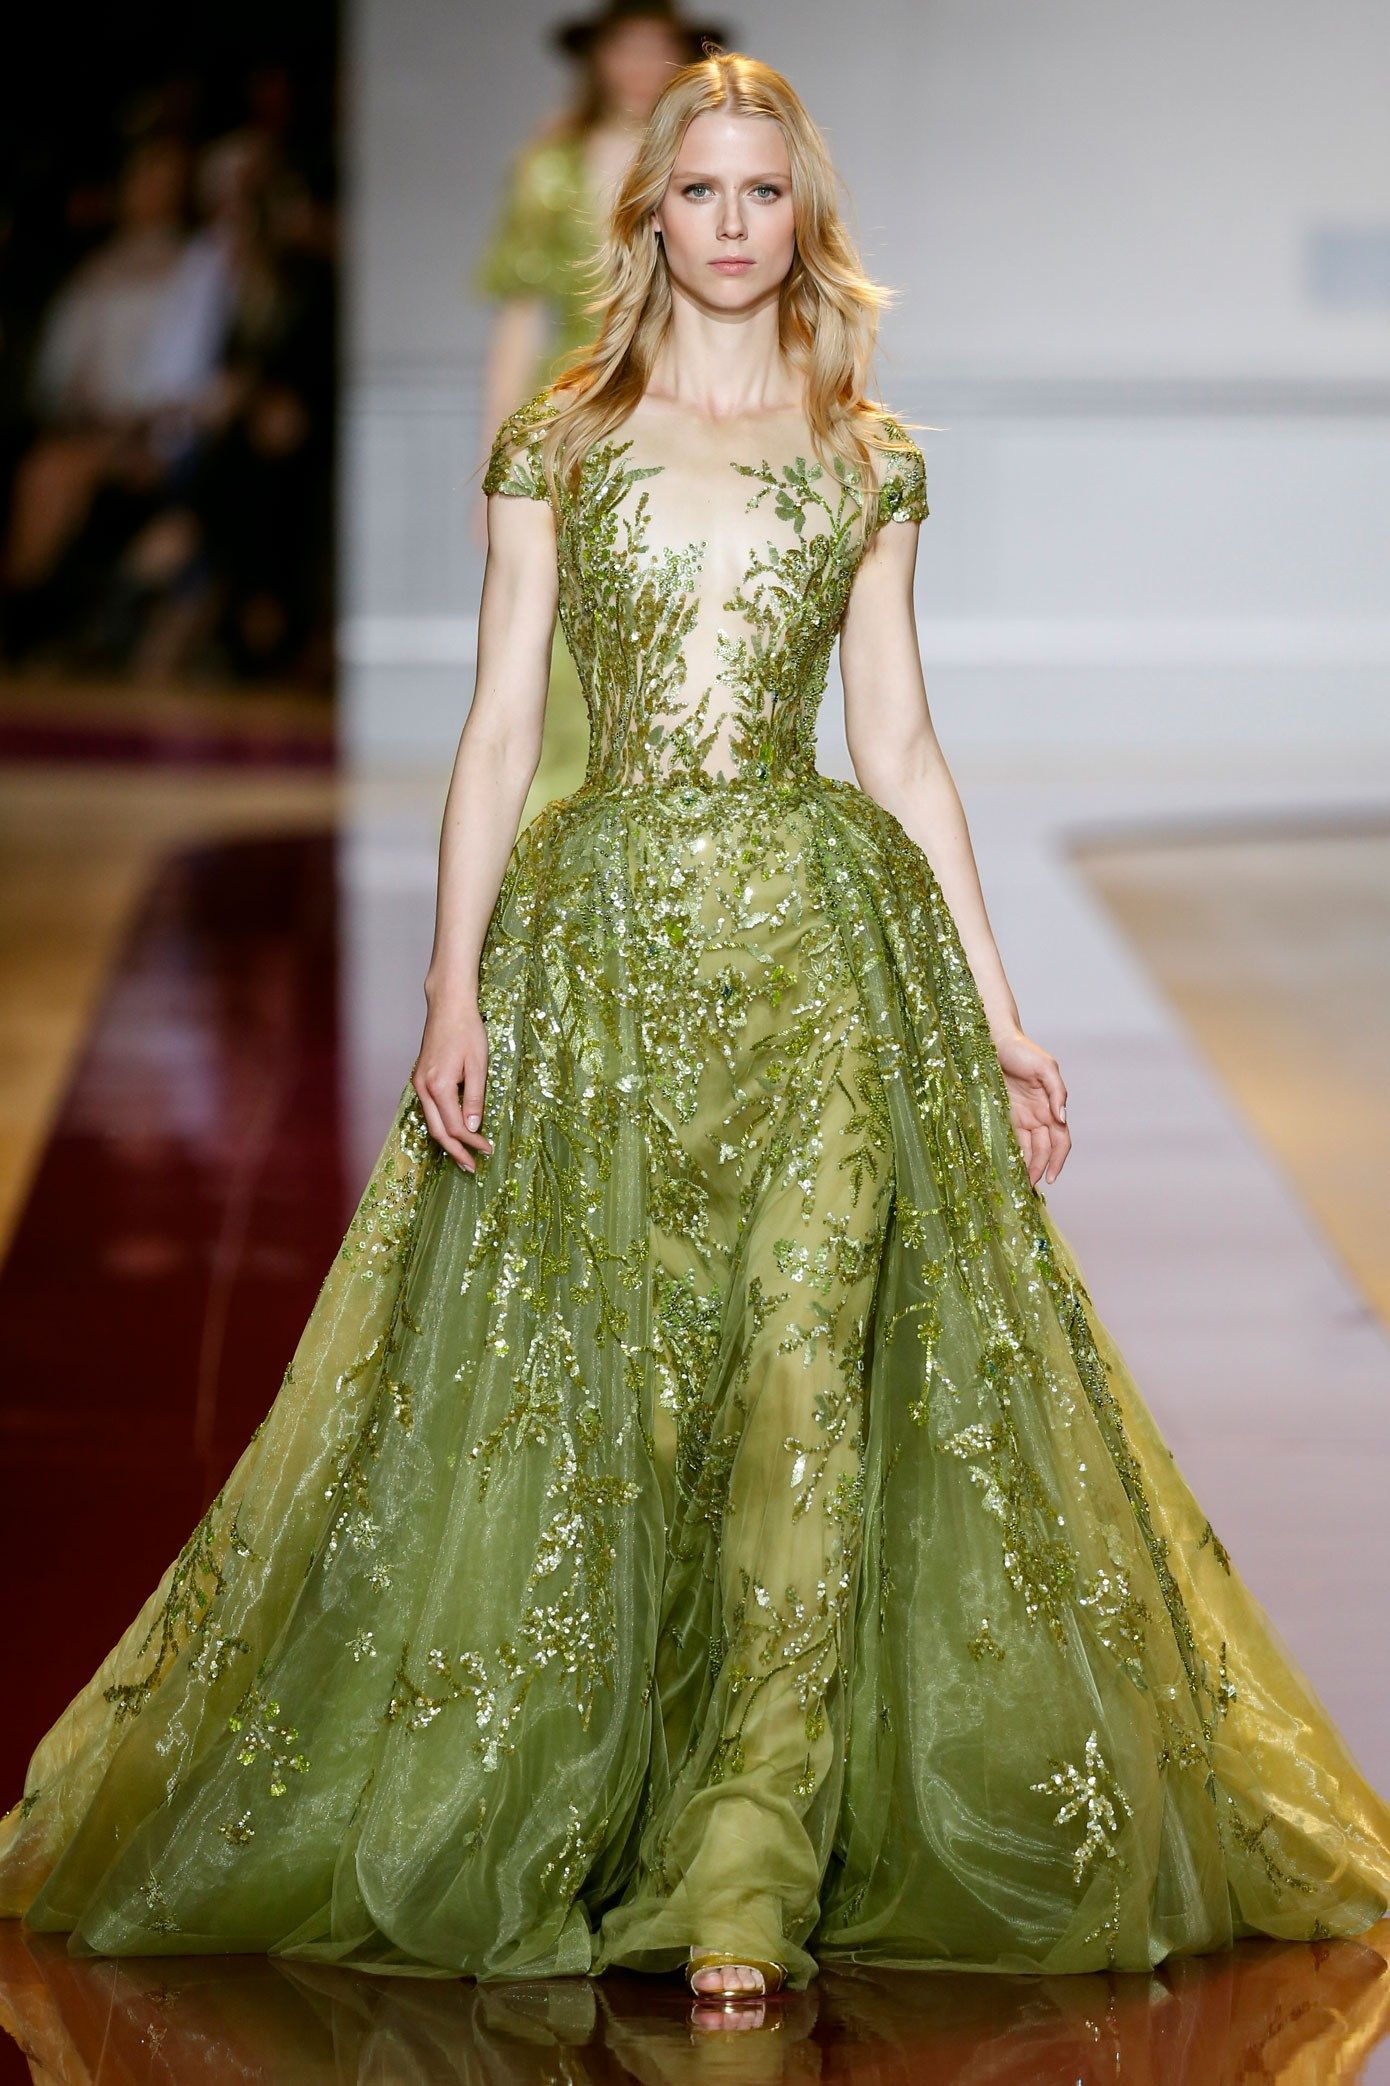 Zuhair murad ball gown in in bengal grass green tulle adorned